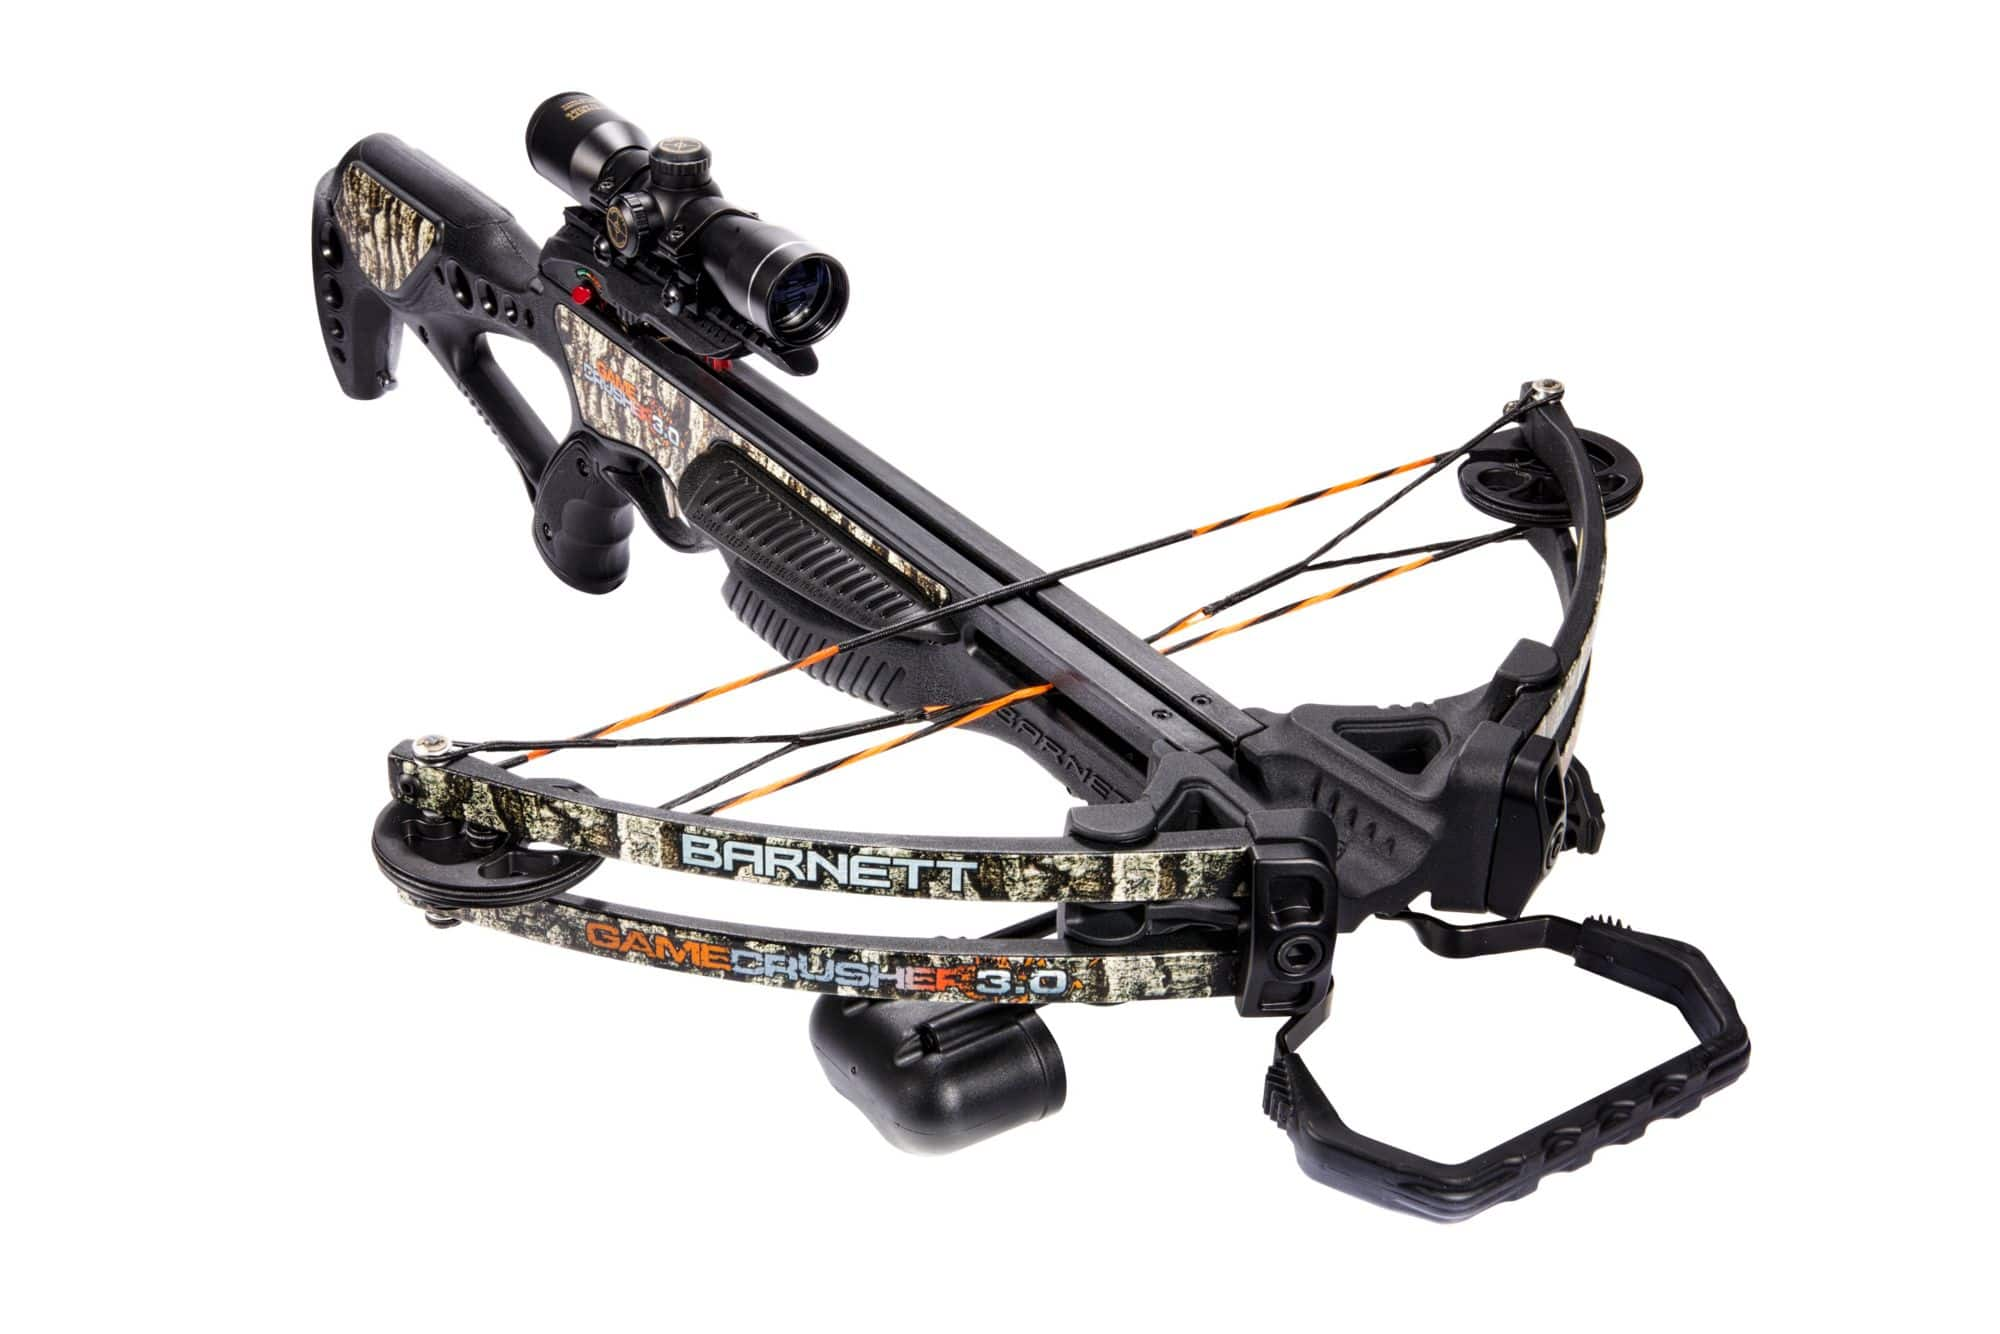 Barnett Game Crusher 3.0 crossbow - $279 at Dick's Sporting Goods